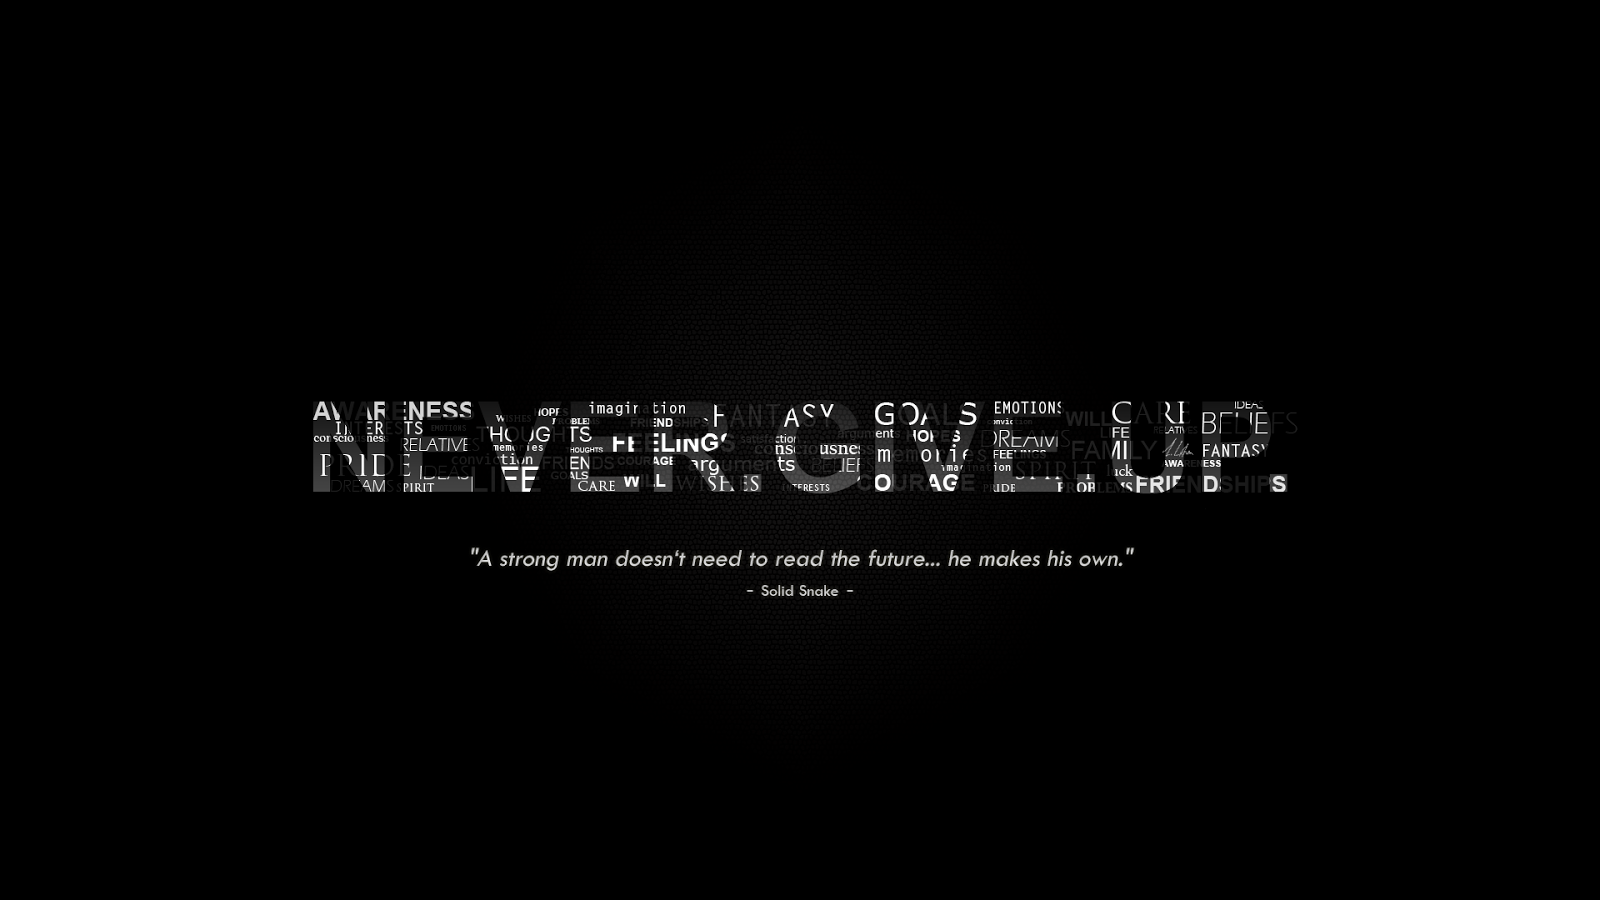 Don T Give Up Wallpaper 07 1600x900